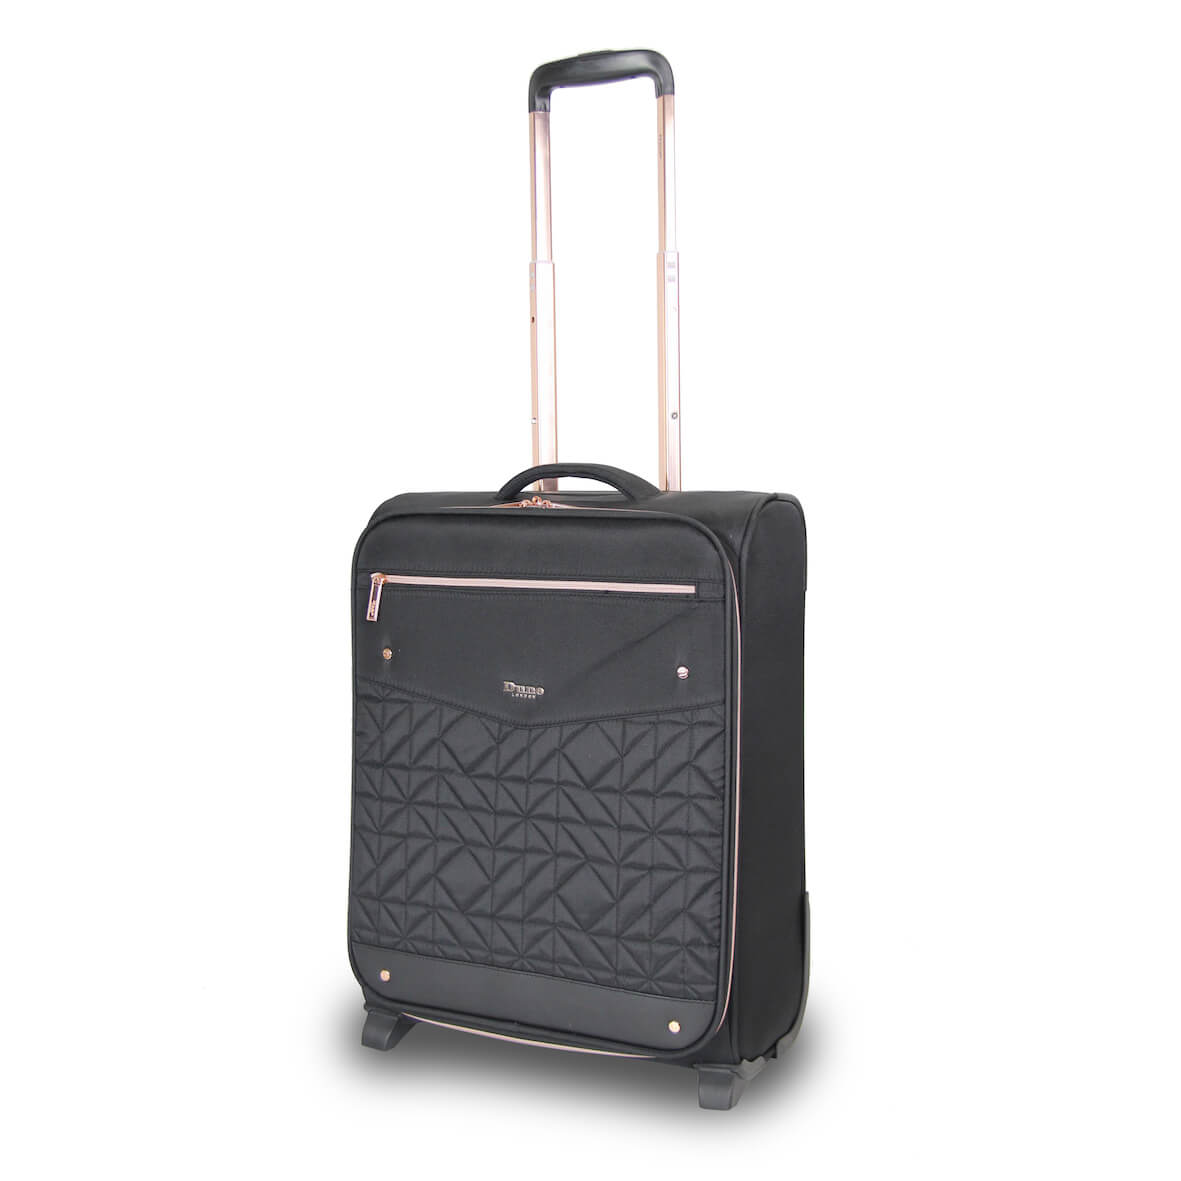 Dune London Tianna 55cm 2-Wheel Cabin Case